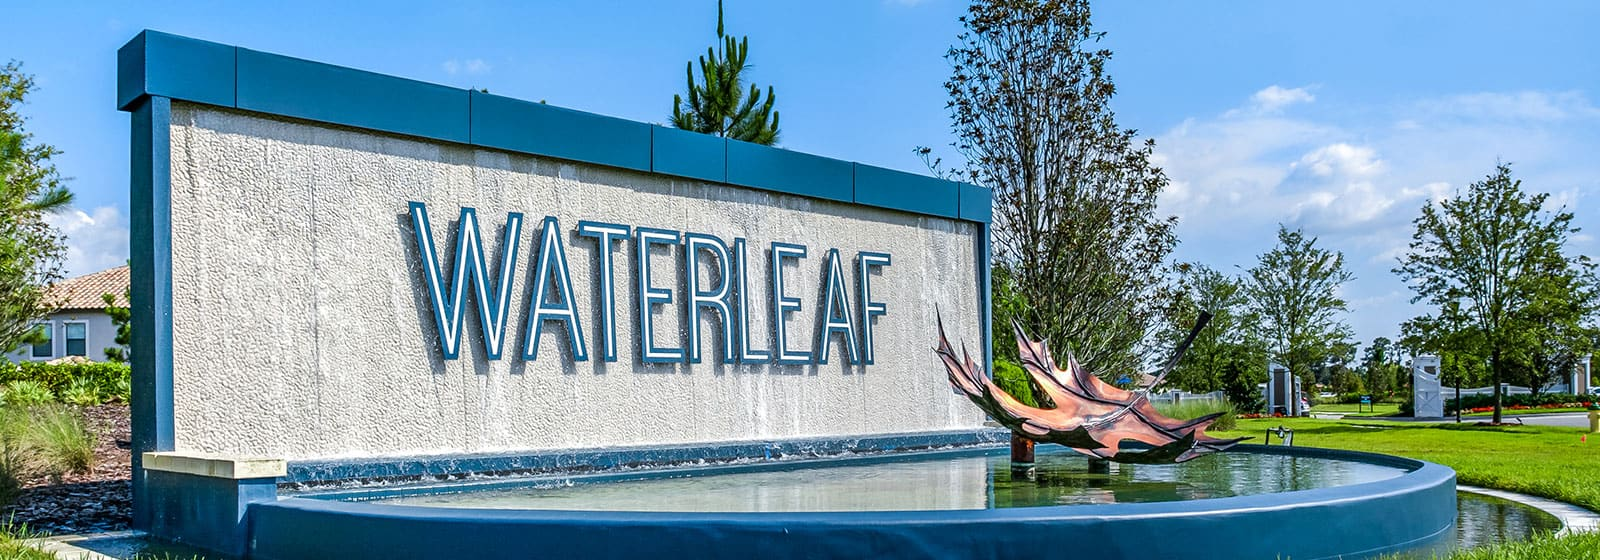 WaterLeaf Blog